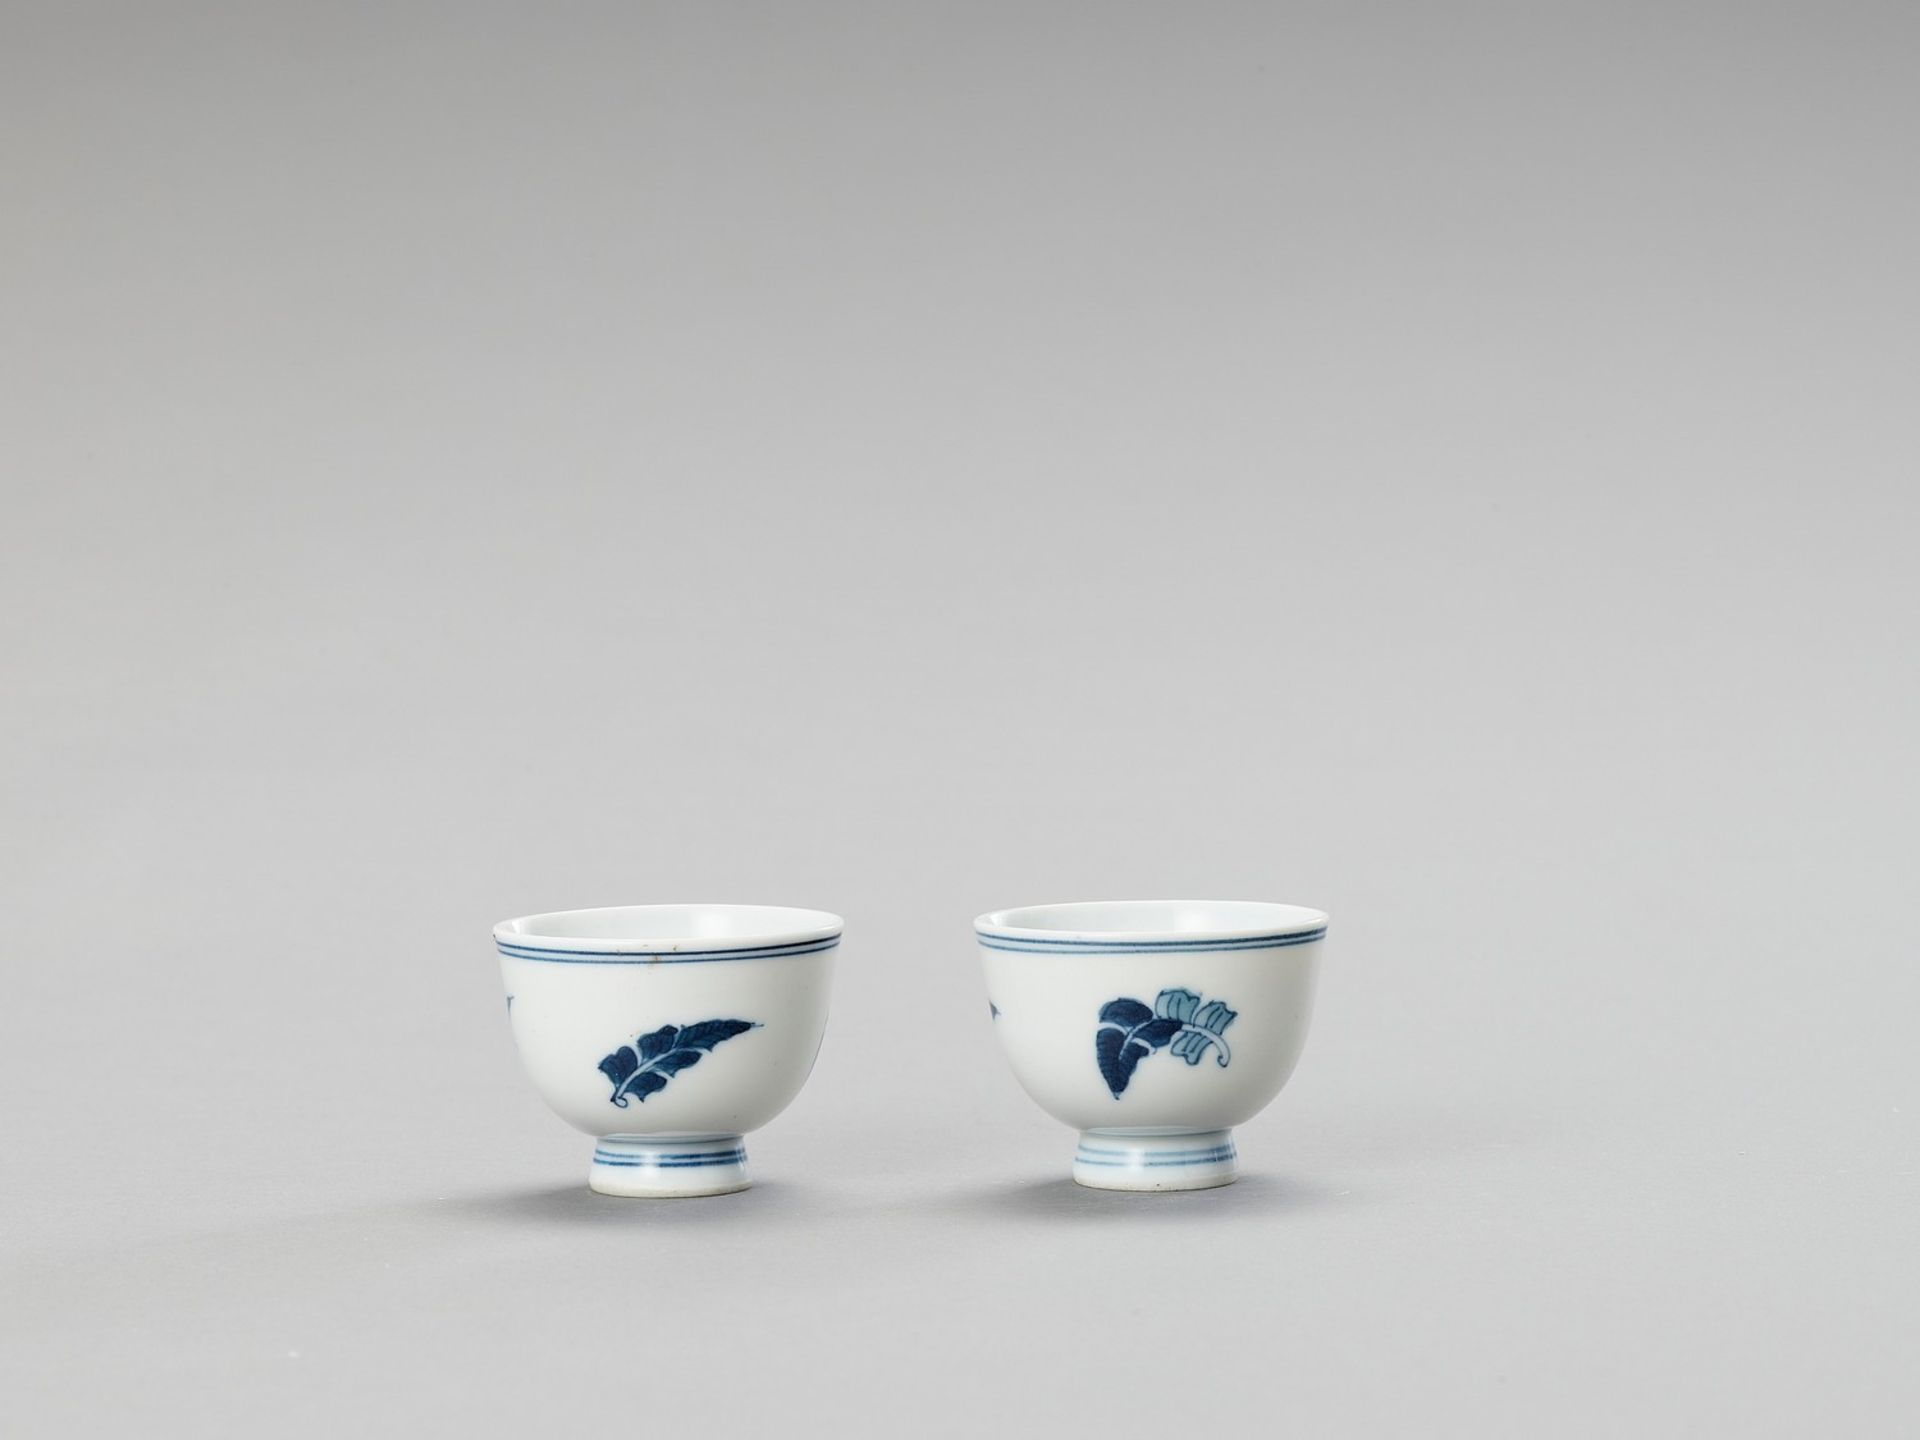 A SMALL PAIR OF BLUE AND WHITE PORCELAIN CUPS - Image 5 of 5